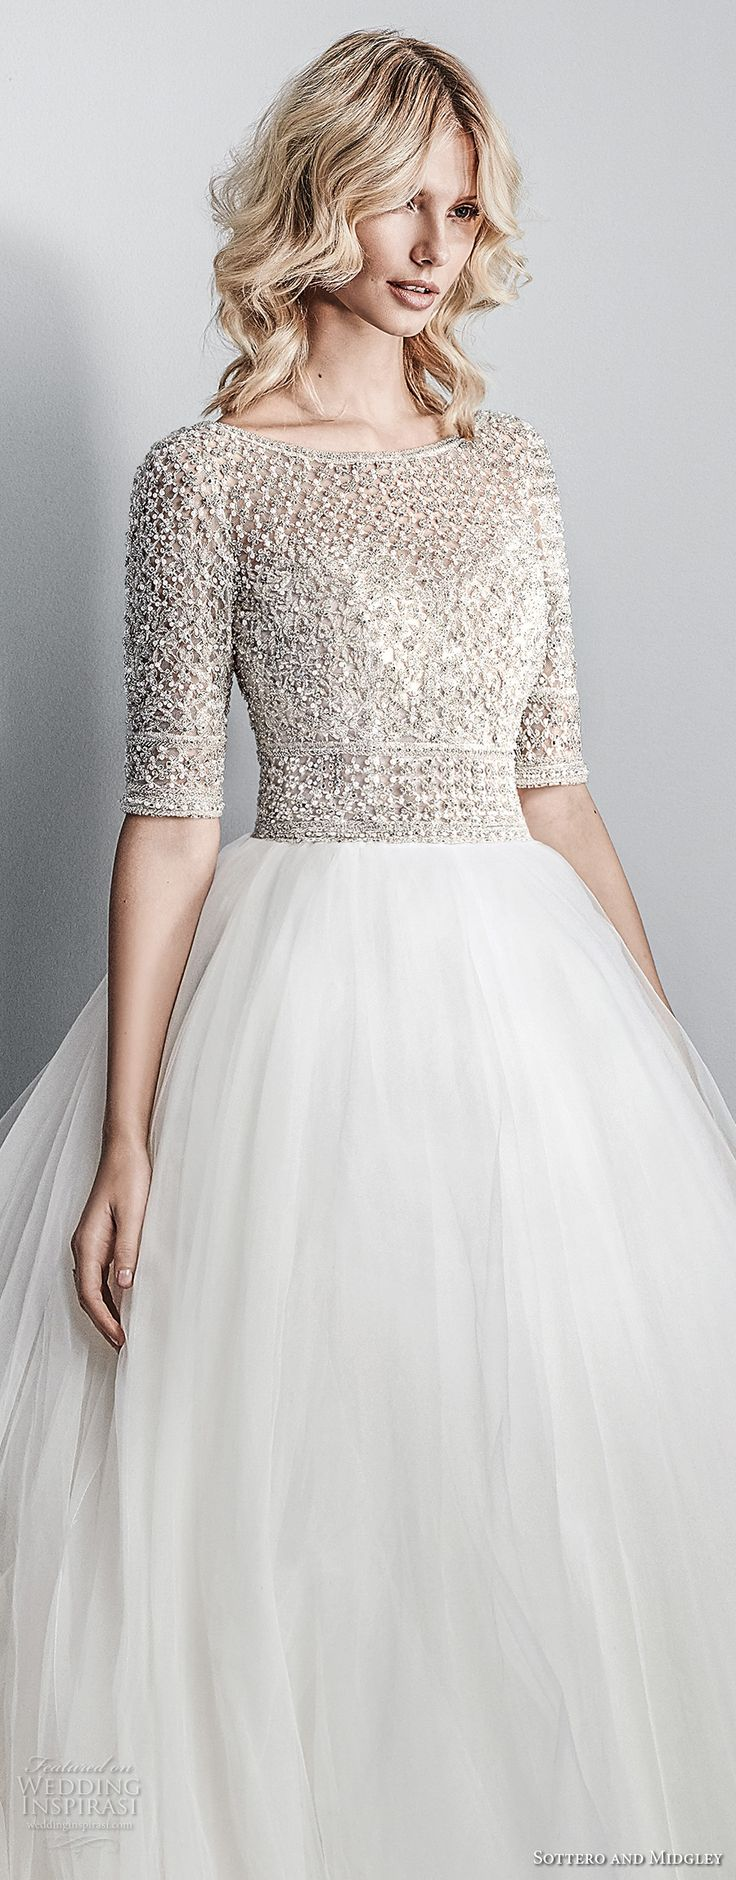 sottero midgley fall 2017 half sleeves bateau neck heavily embellished beaded bodice tulle skirt romantic glamorous a line wedding dress open square back chapel train (611) zv -- Sottero and Midgley Fall 2017 Wedding Dresses